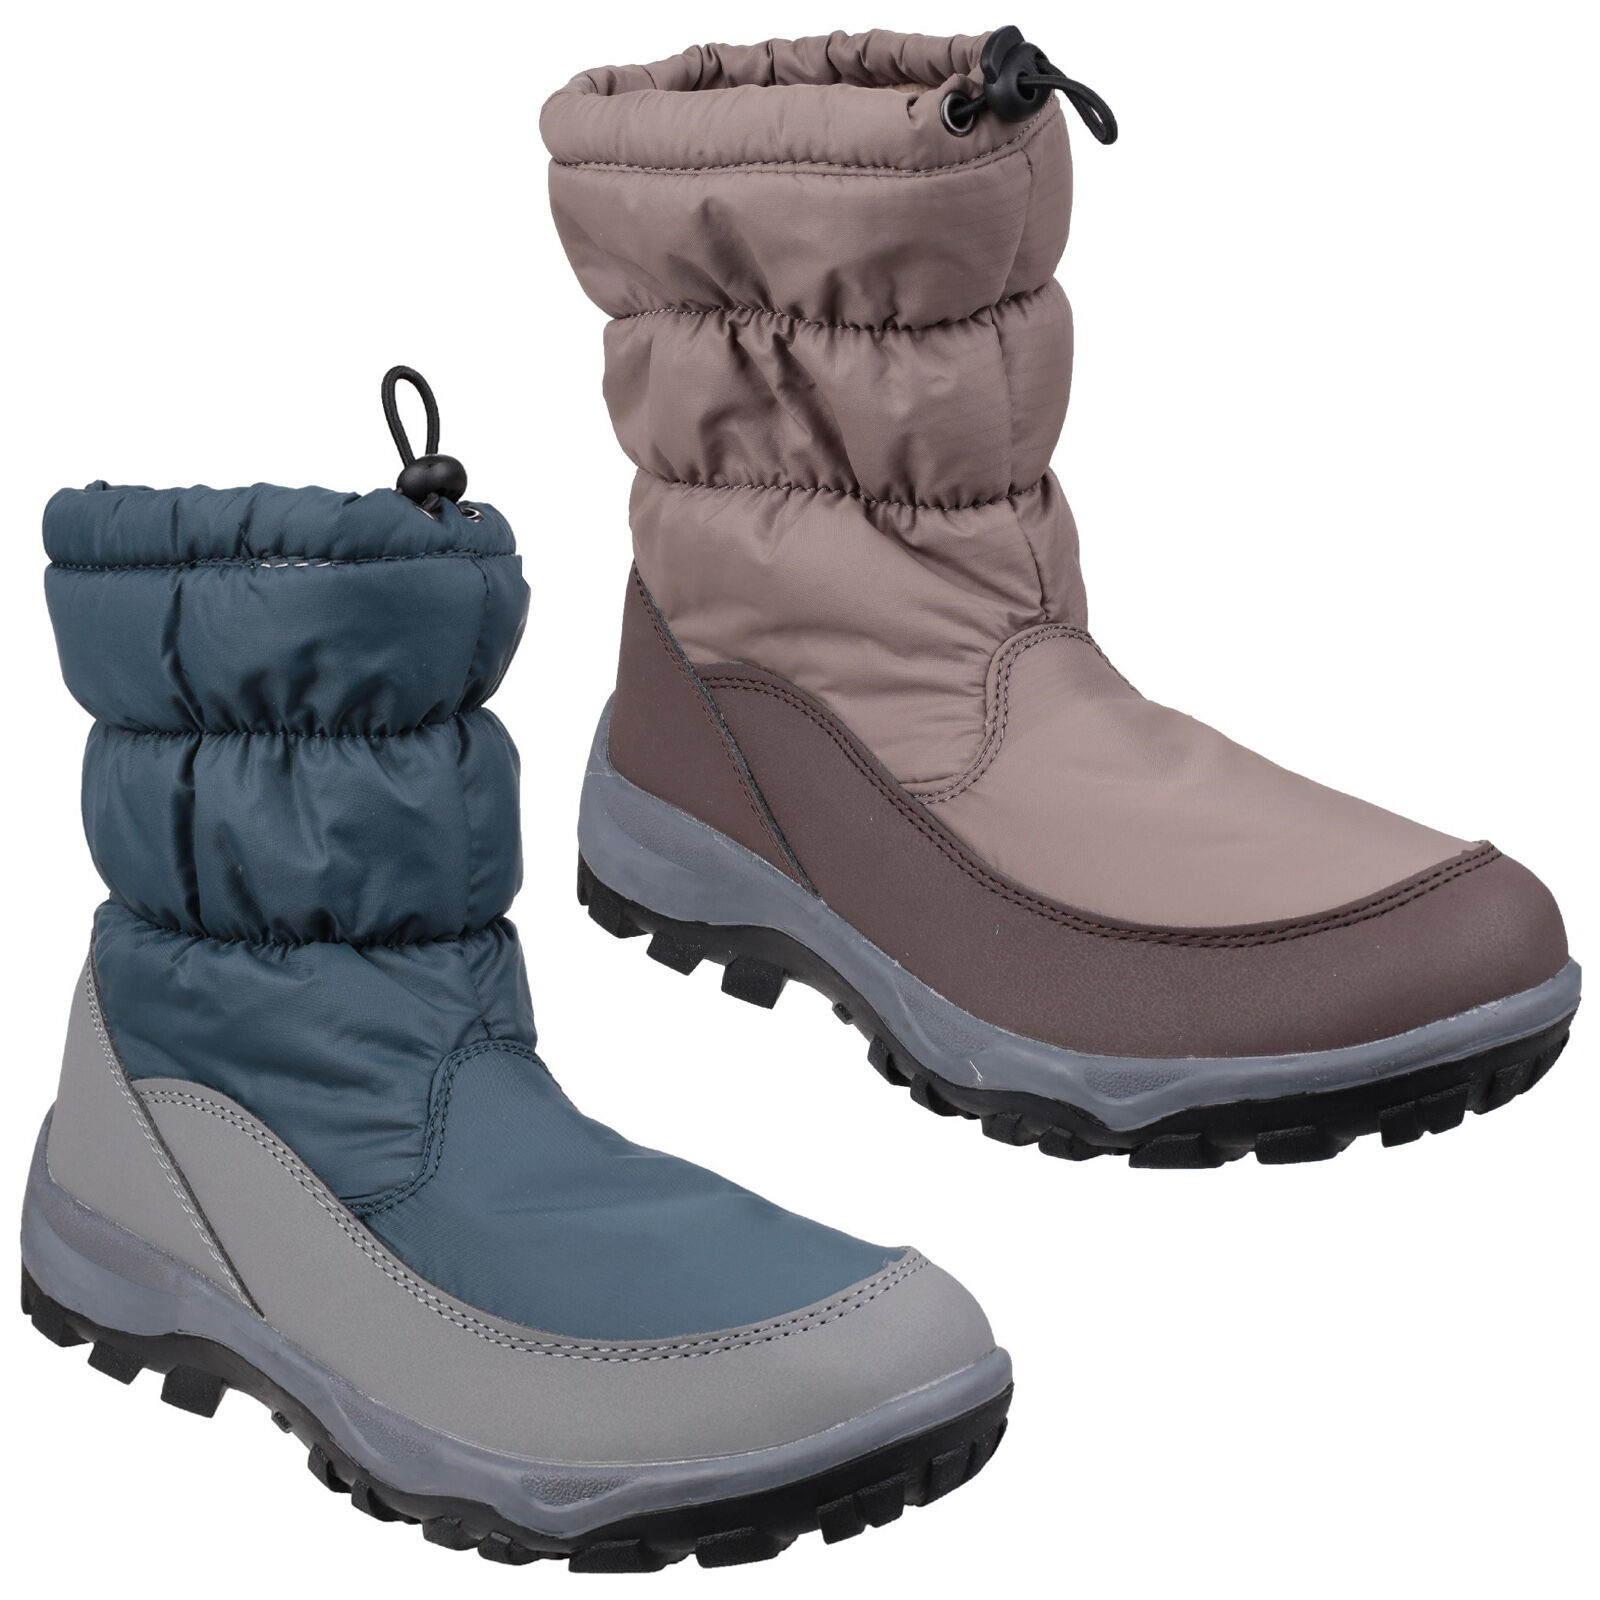 Cotswold Polar Mujer Impermeable Mujer Polar Botas De Nieve uk3-8 c6d373